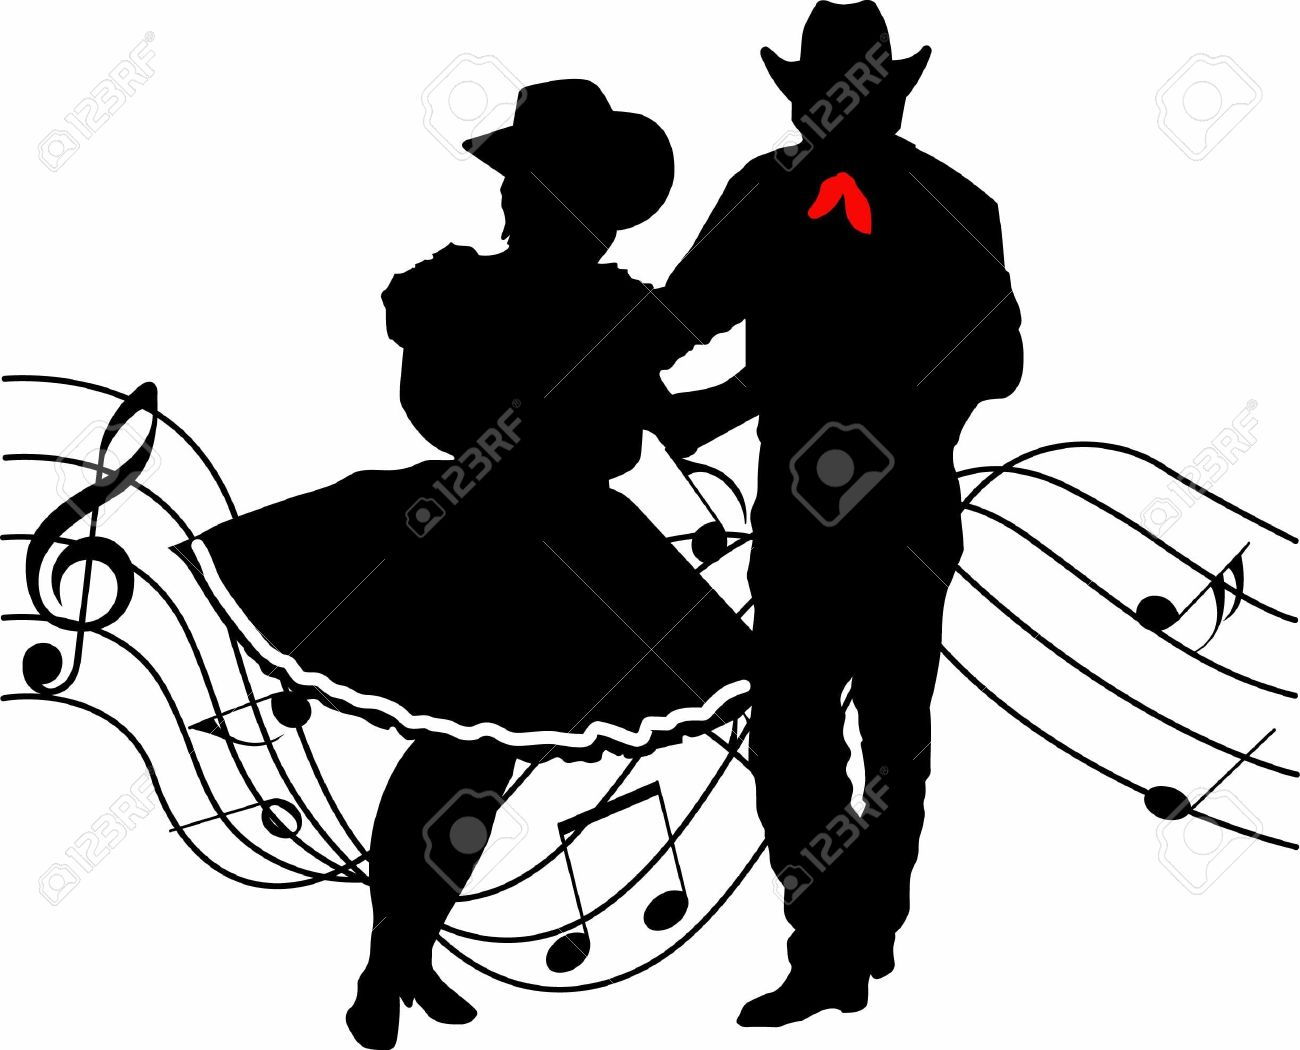 The perfect country silhouette of square dancing and music. - 45297514